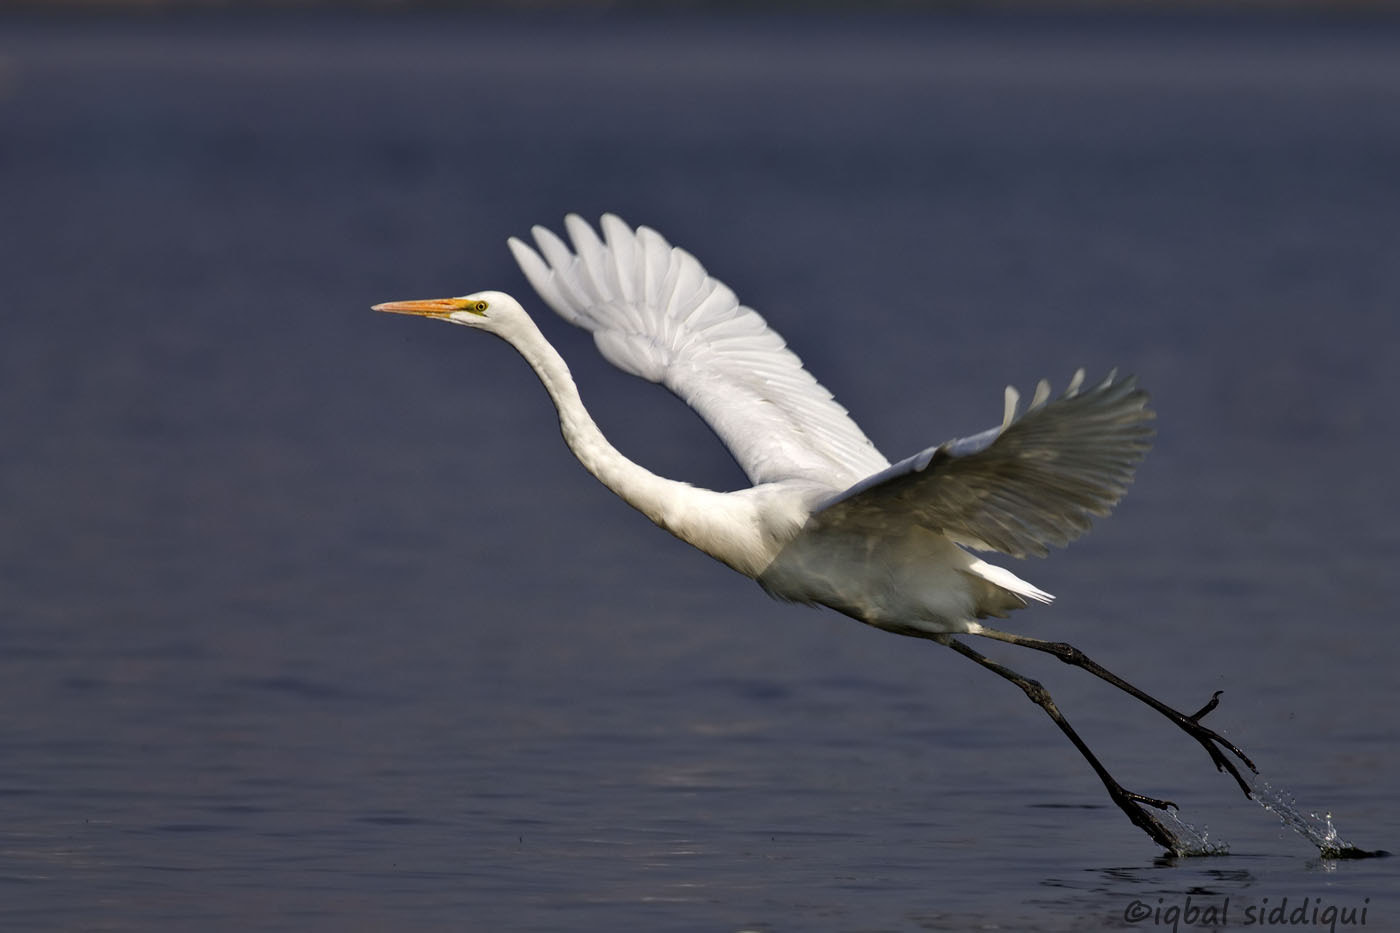 Photograph Great Egret take off  by Iqbal Siddiqui on 500px